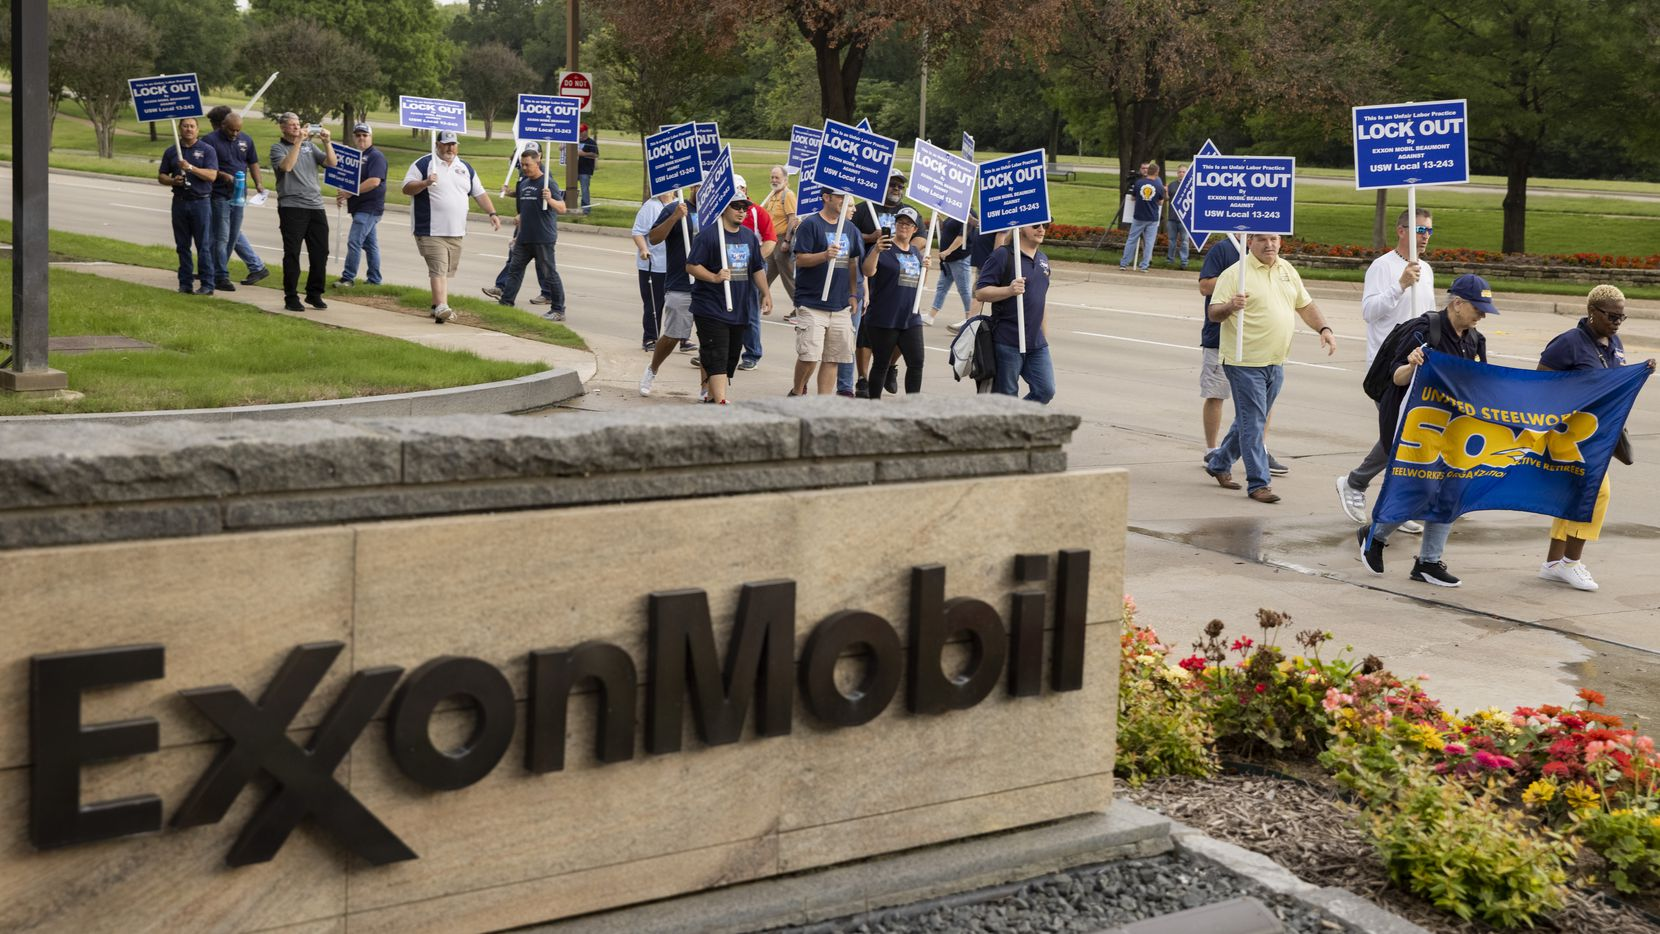 ExxonMobil workers and union activists protest outside of the ExxonMobil headquarters during the company's shareholder meeting on Wednesday, May 26, 2021, in Irving. (Juan Figueroa/The Dallas Morning News)